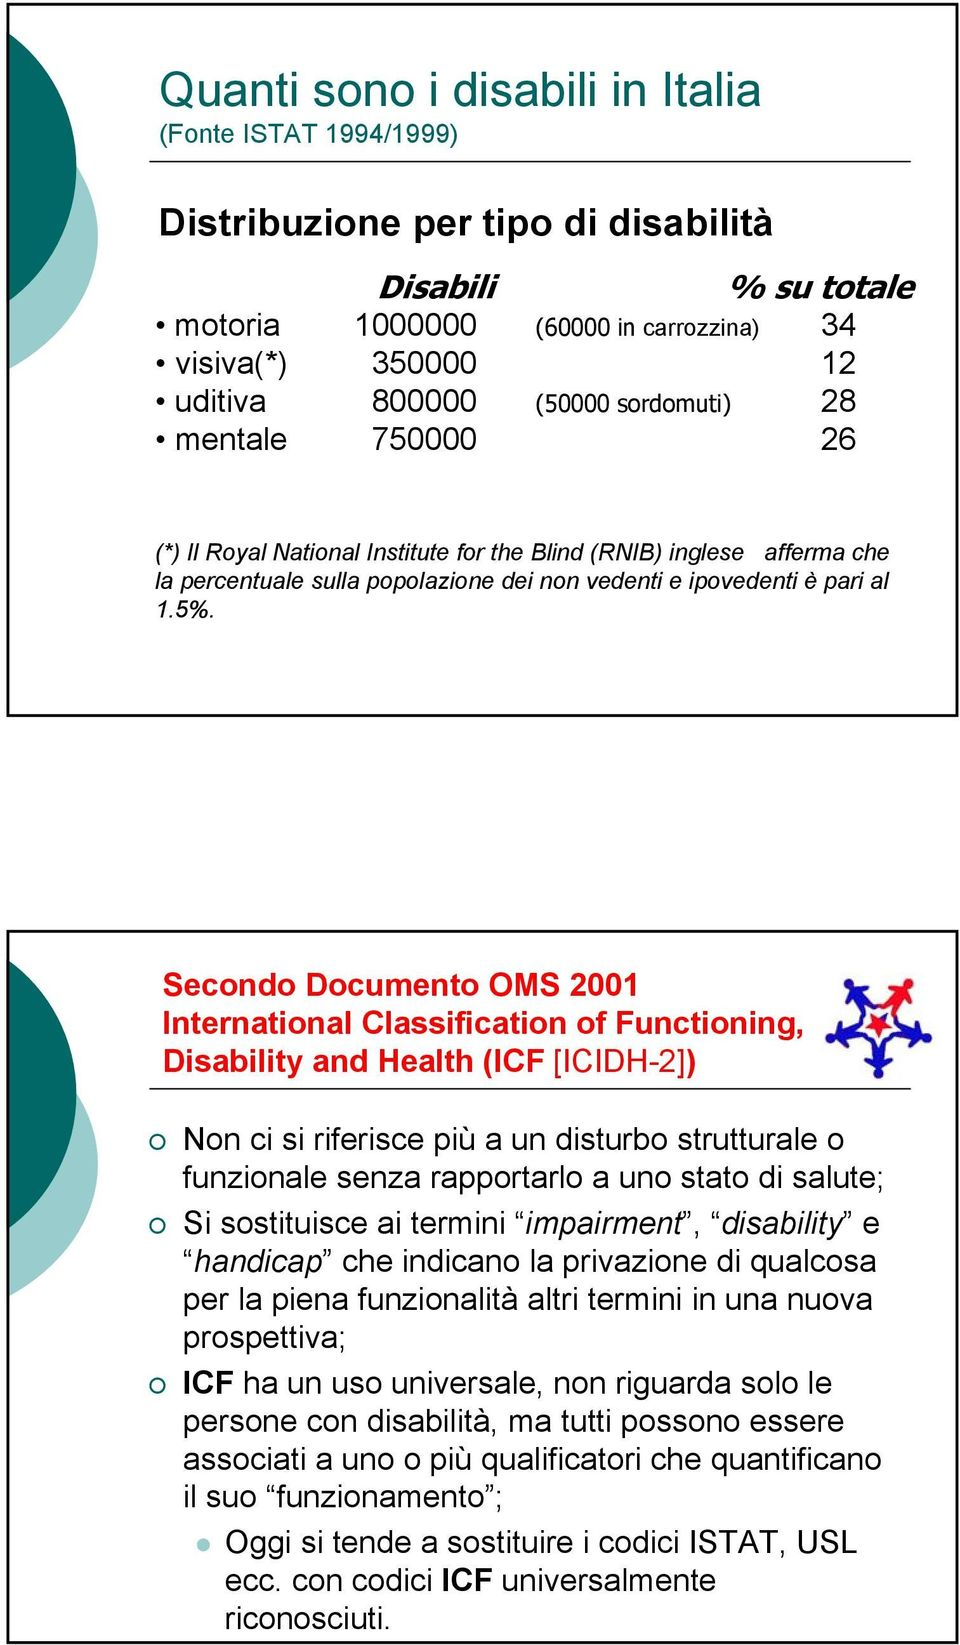 Secondo Documento OMS 2001 International Classification of Functioning, Disability and Health (ICF [ICIDH-2]) Non ci si riferisce più a un disturbo strutturale o funzionale senza rapportarlo a uno